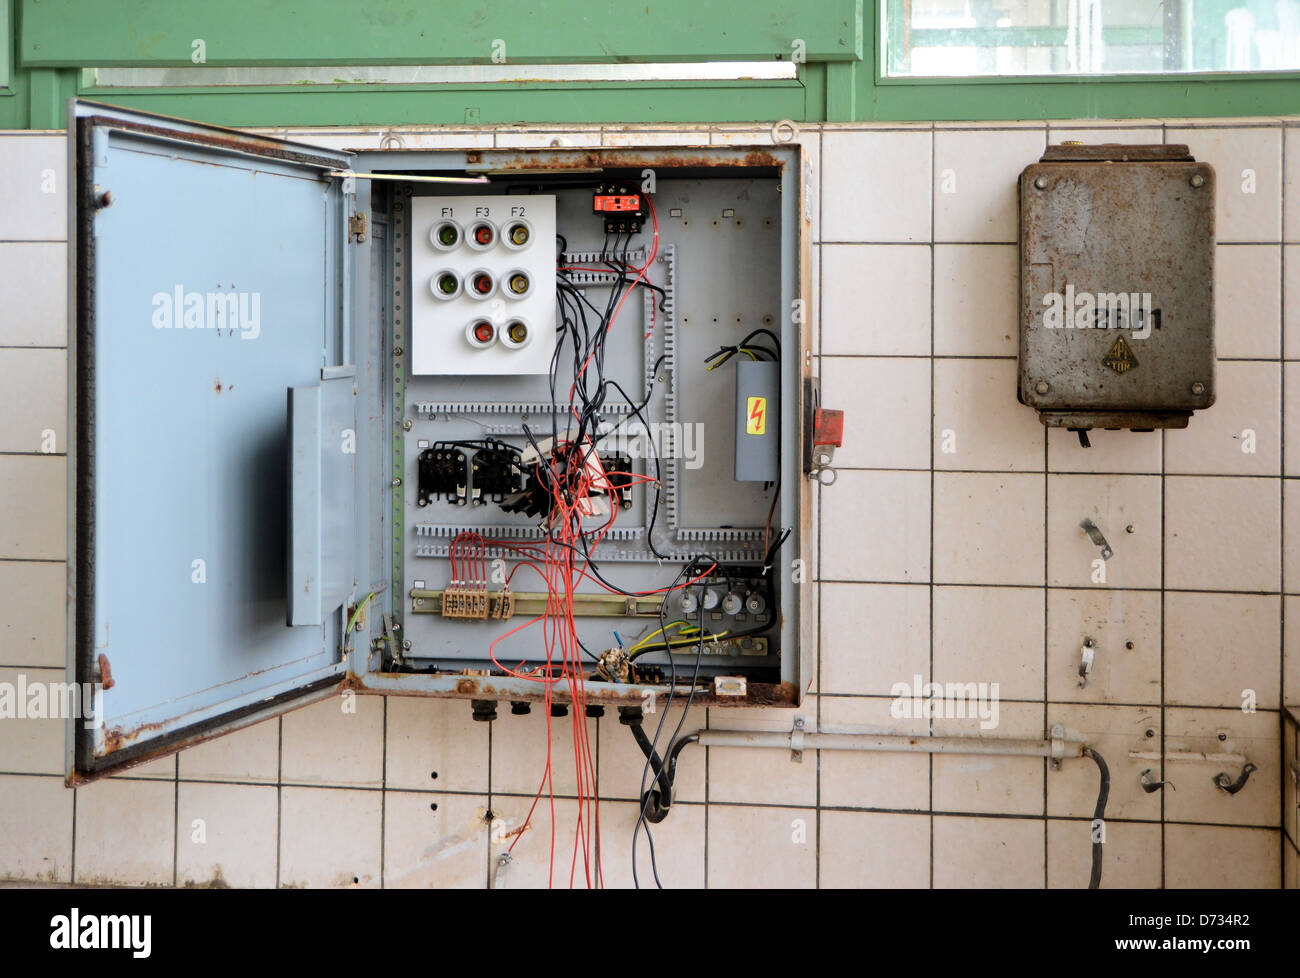 Fuse Box Stock Photos Images Alamy Nice Doors An Old In A Disused Factory Image